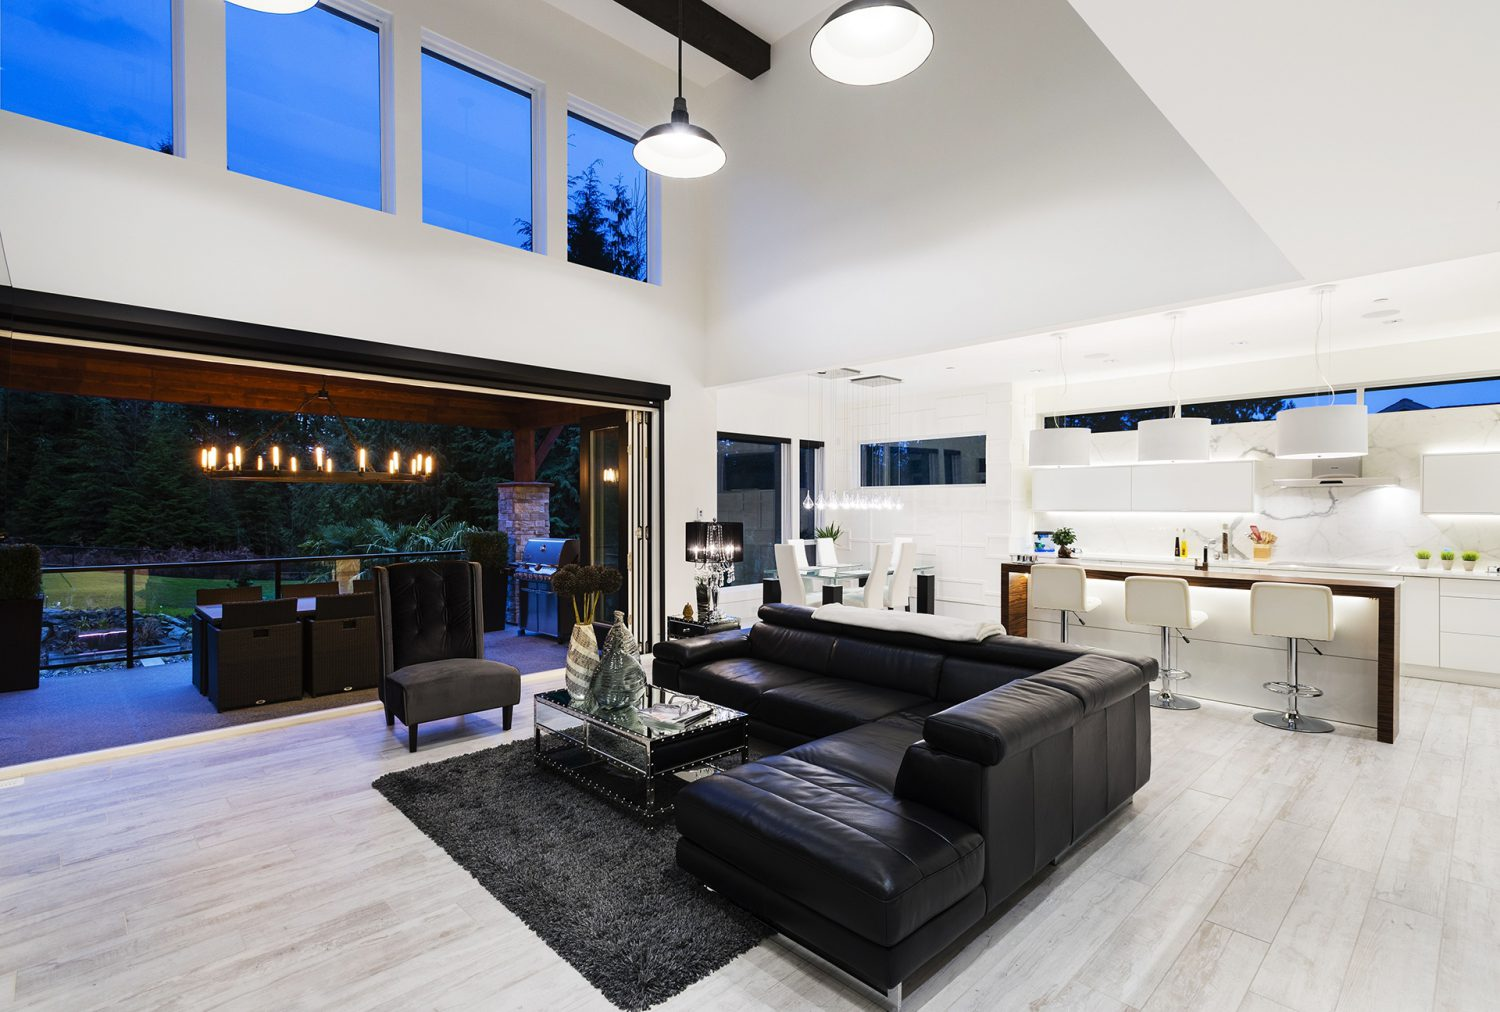 The Whisp custom designed kitchen and living room area by Midland Premium Properties in the Greater Vancouver area.